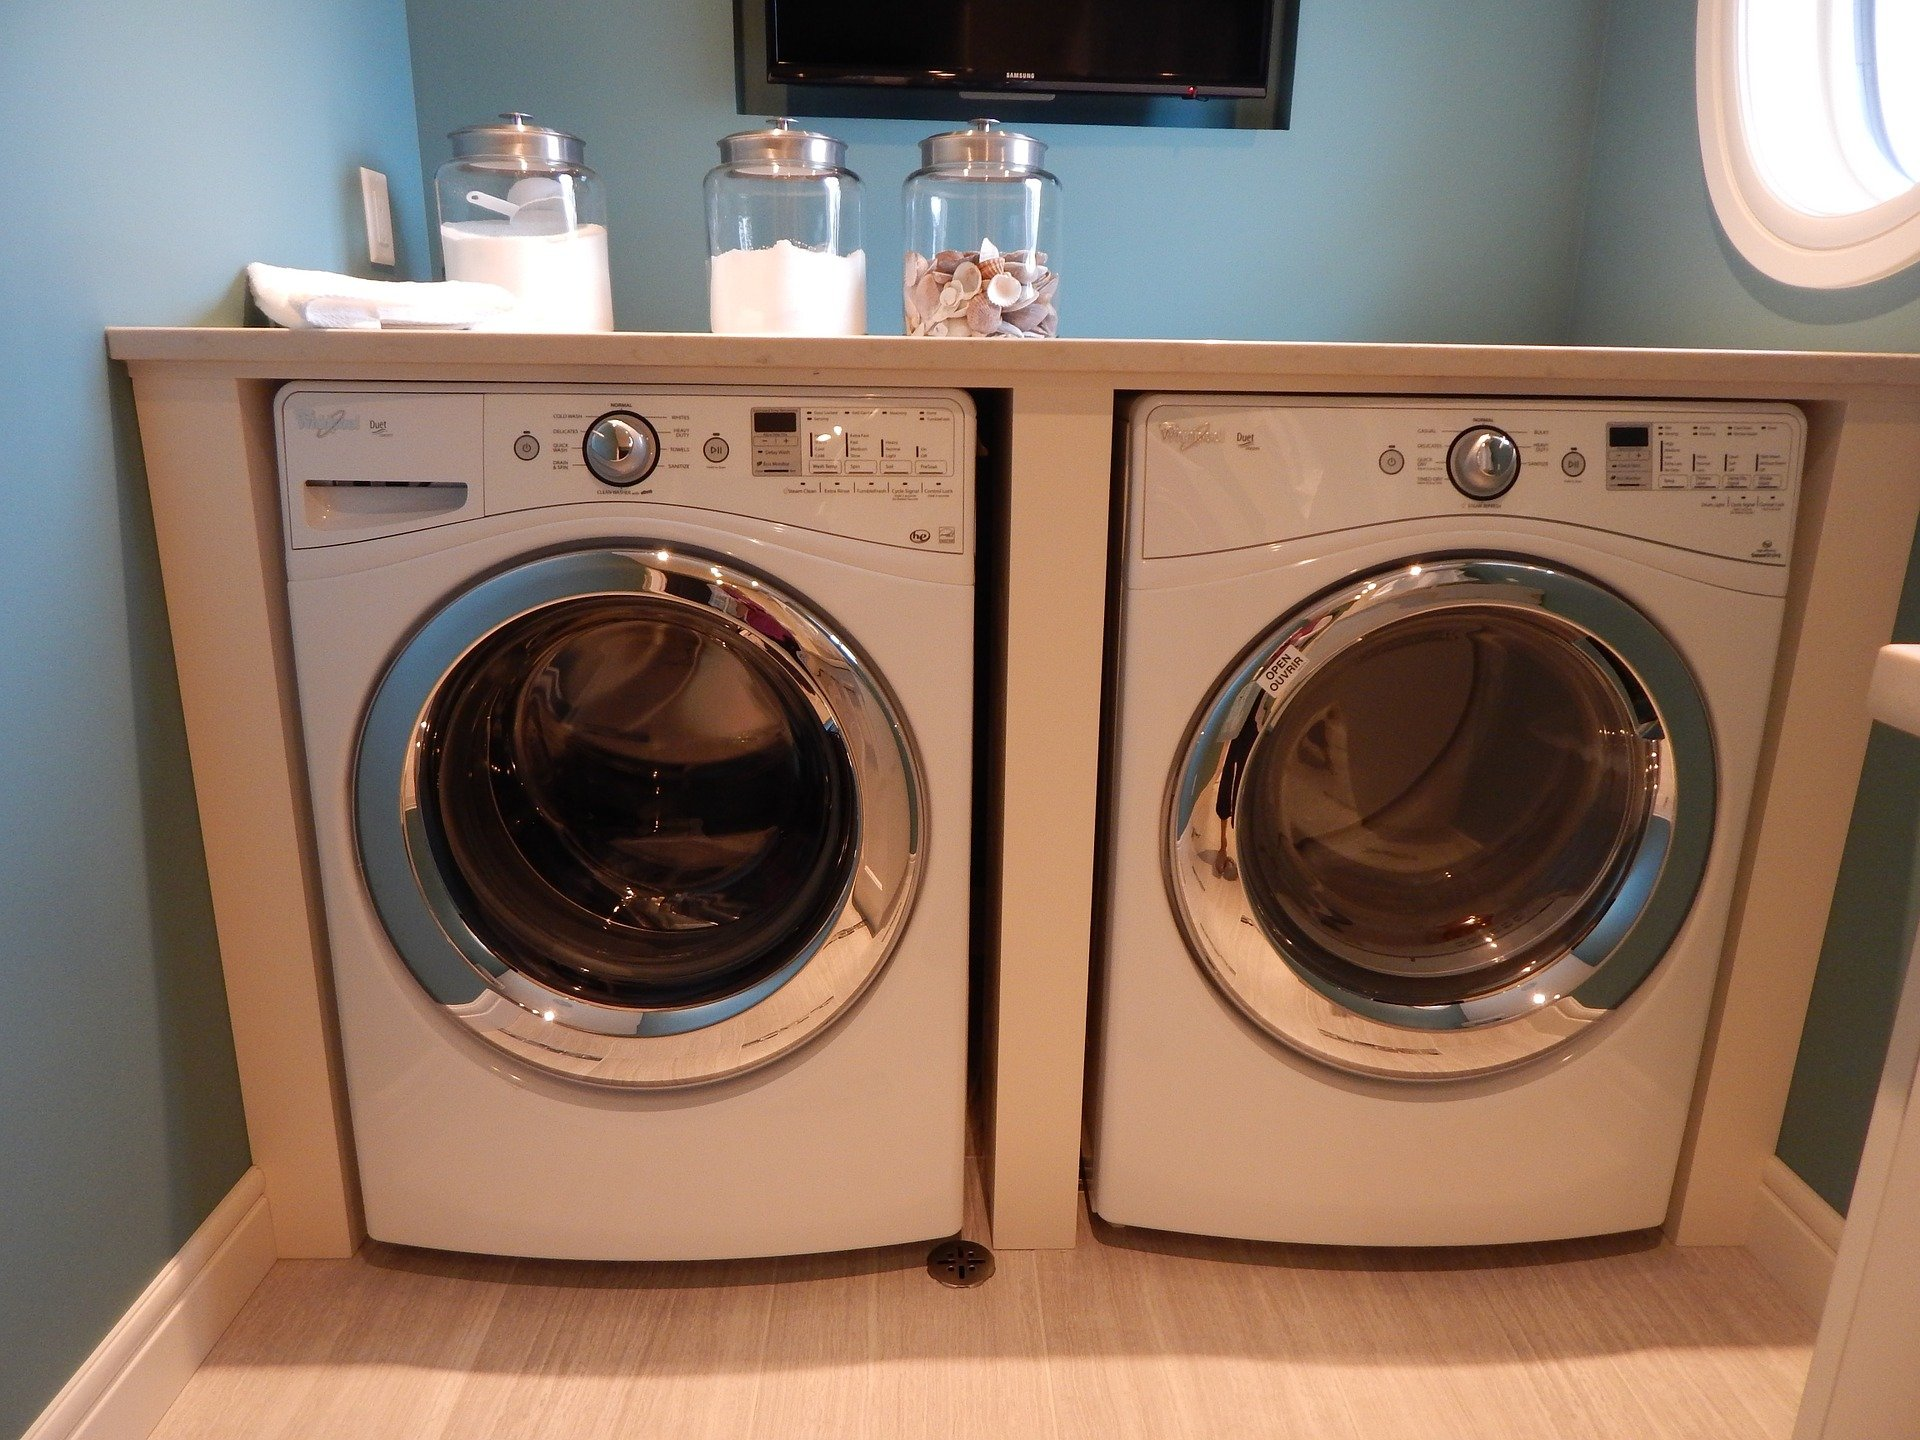 New How to Dispose of a Washer and Dryer - Life Storage Blog US52